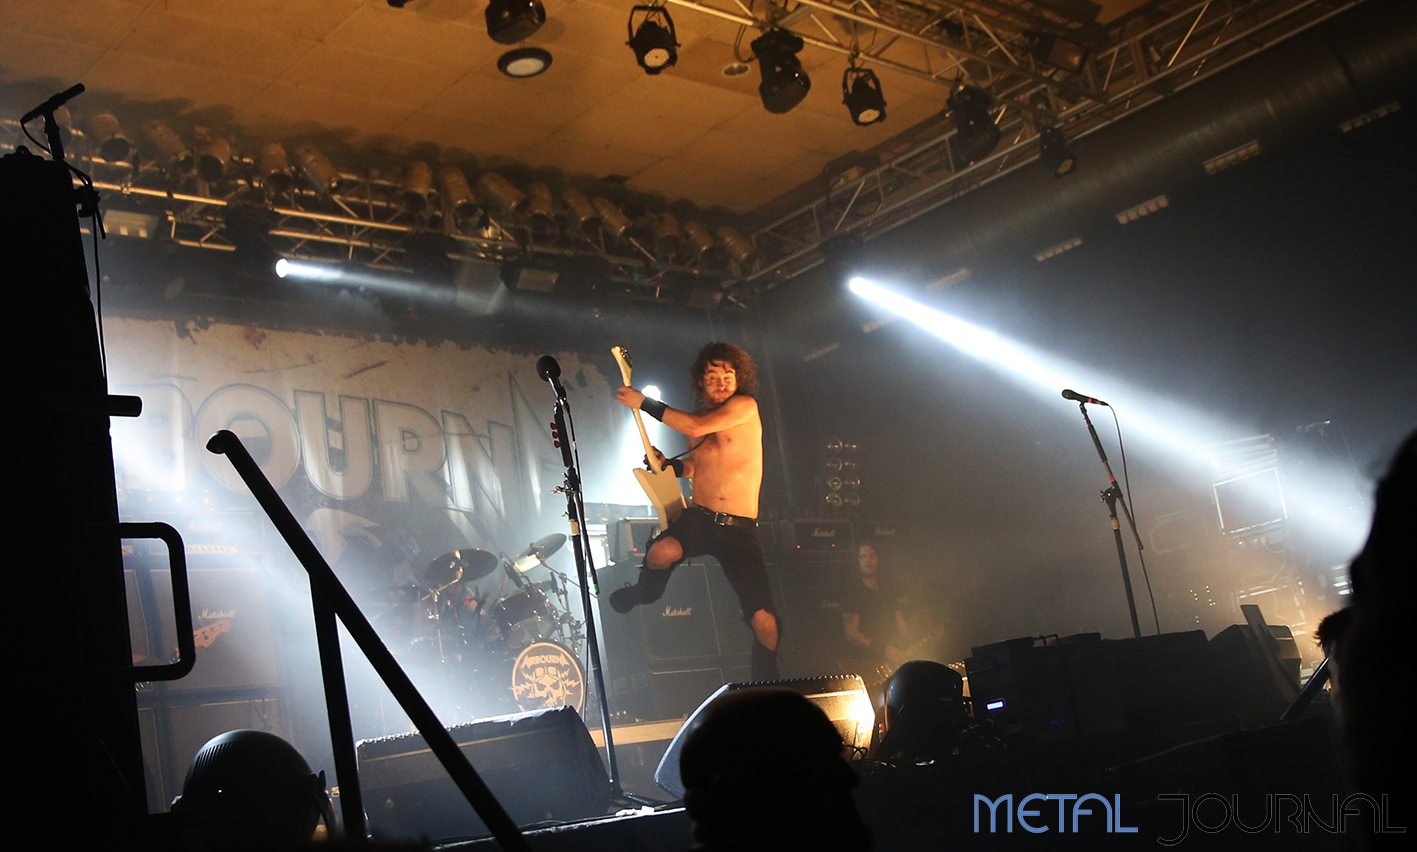 airbourne - metal journal bilbao 2019 pic 10